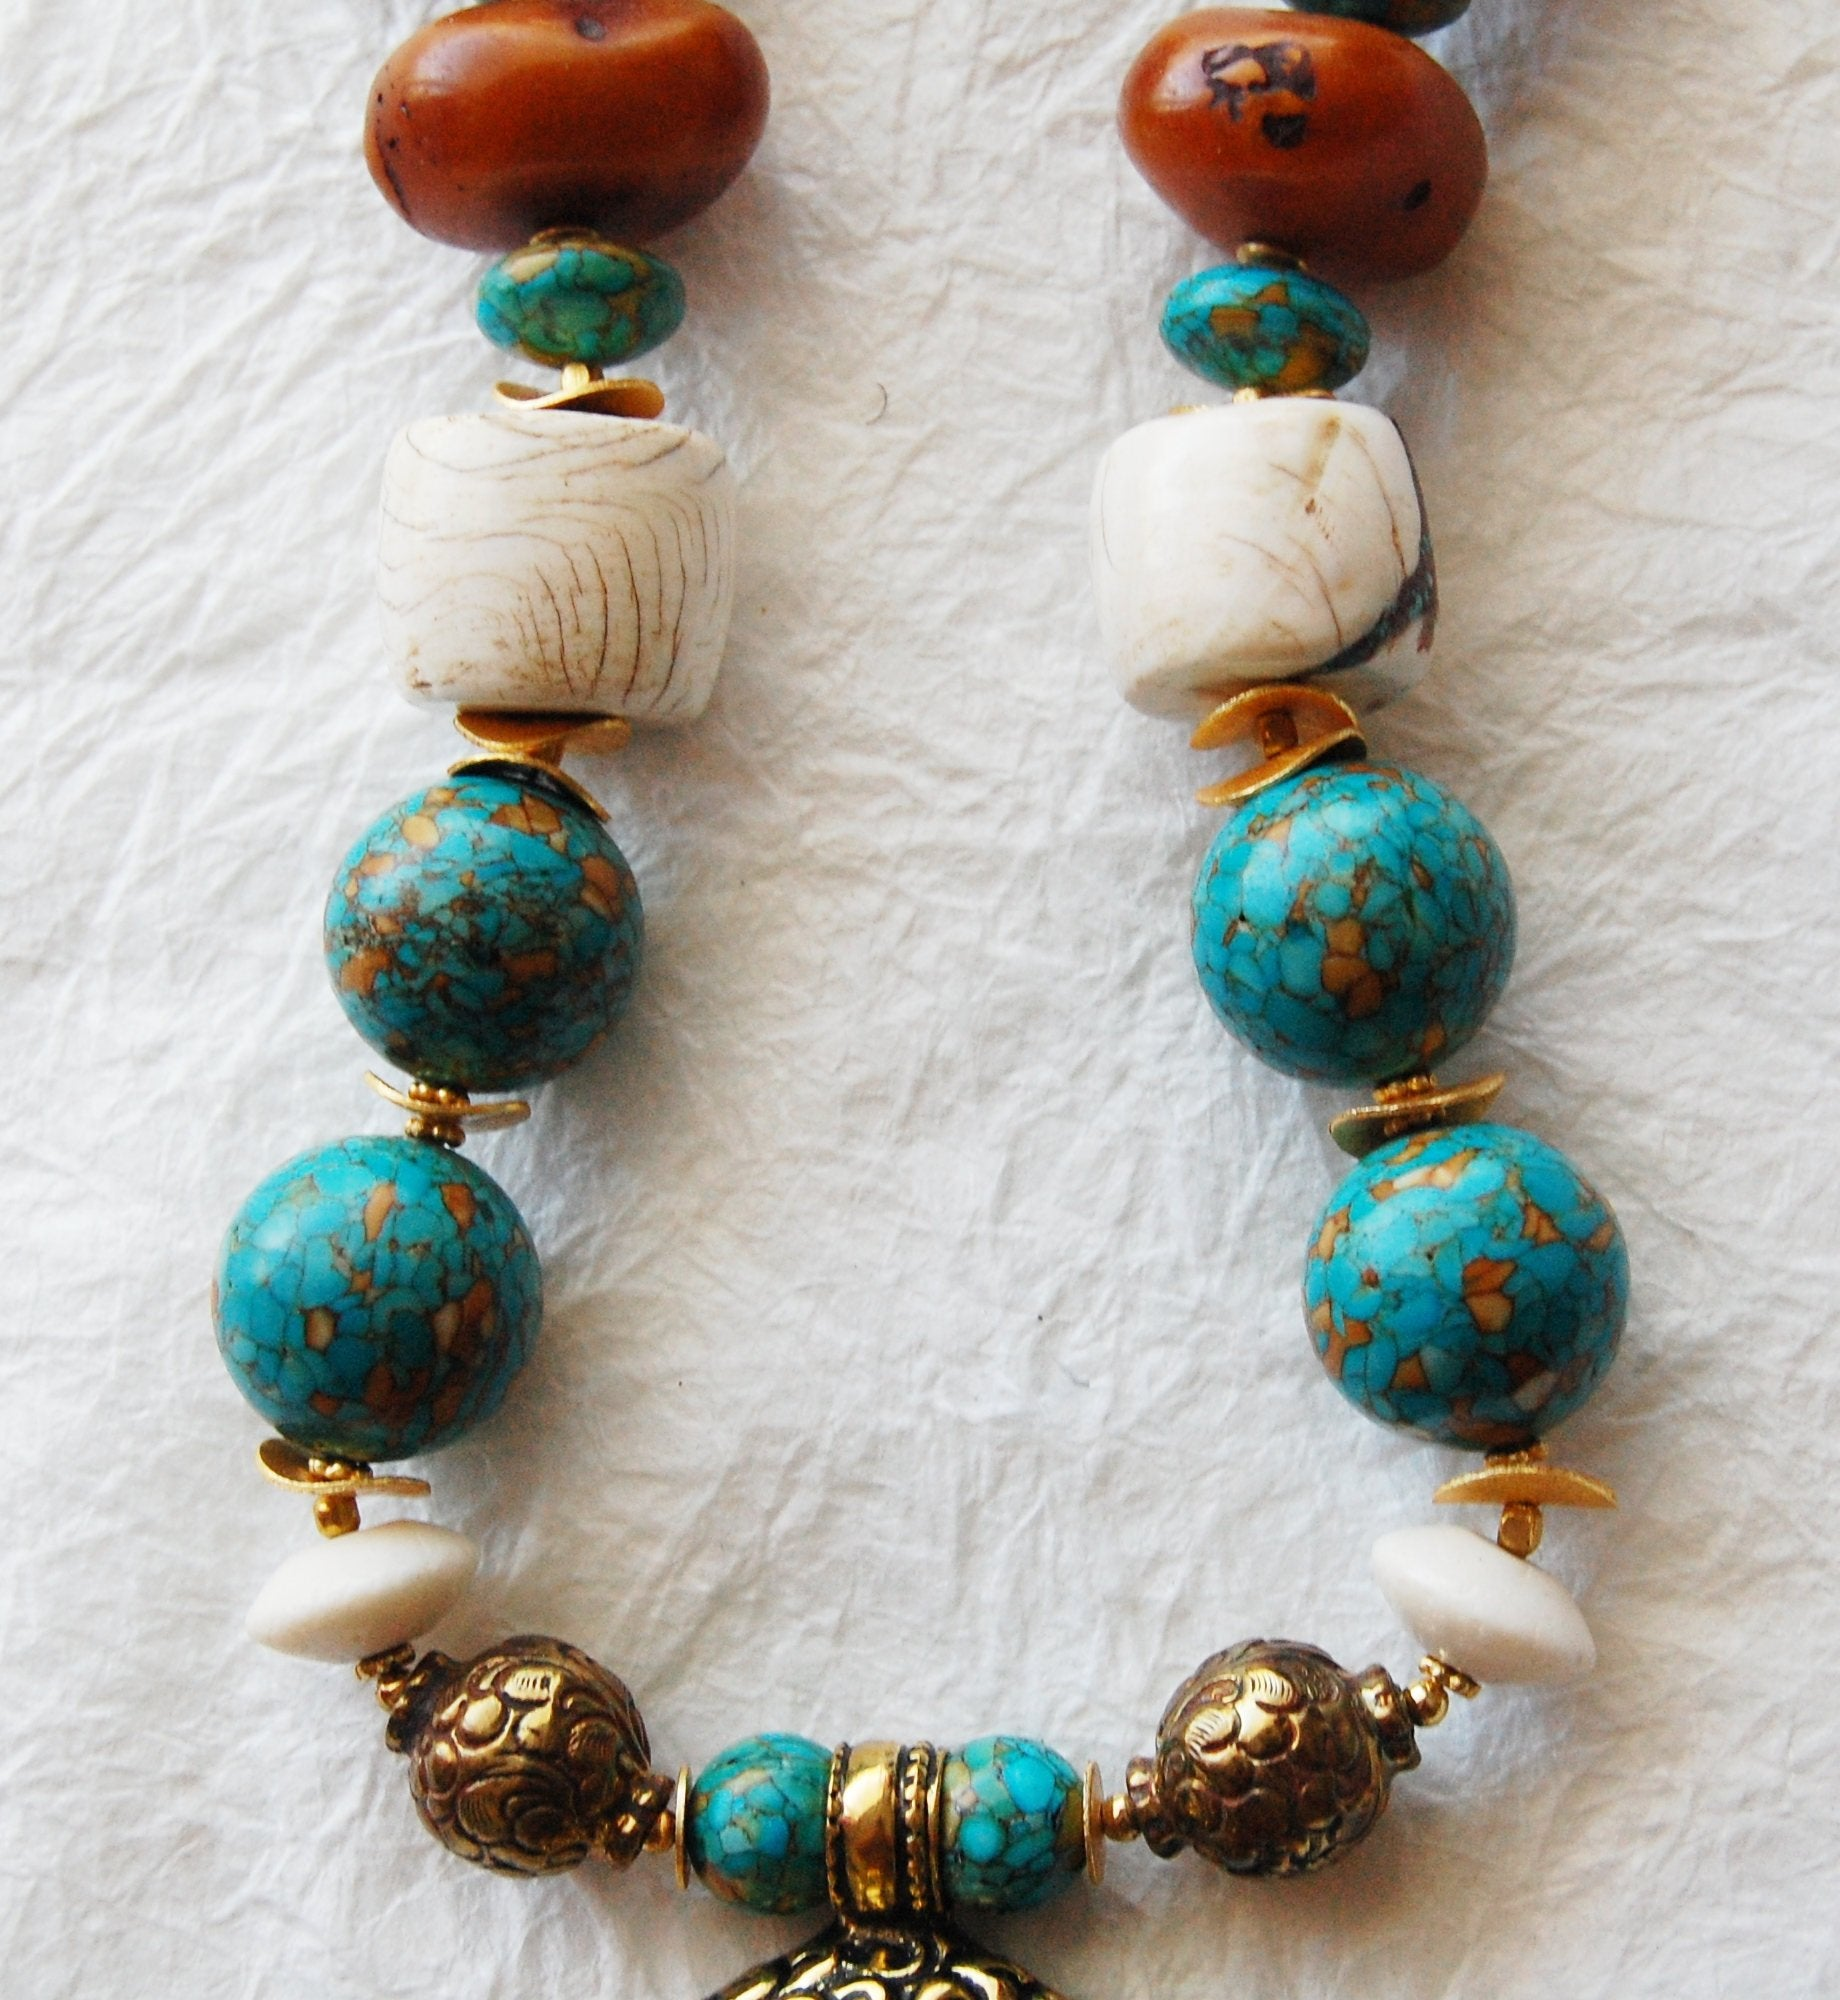 Mosaic Turquoise and Conch Shell Chunky Big Bead Large Buddha Head Zen Inspired Necklace, ZL04174 Big Buddha